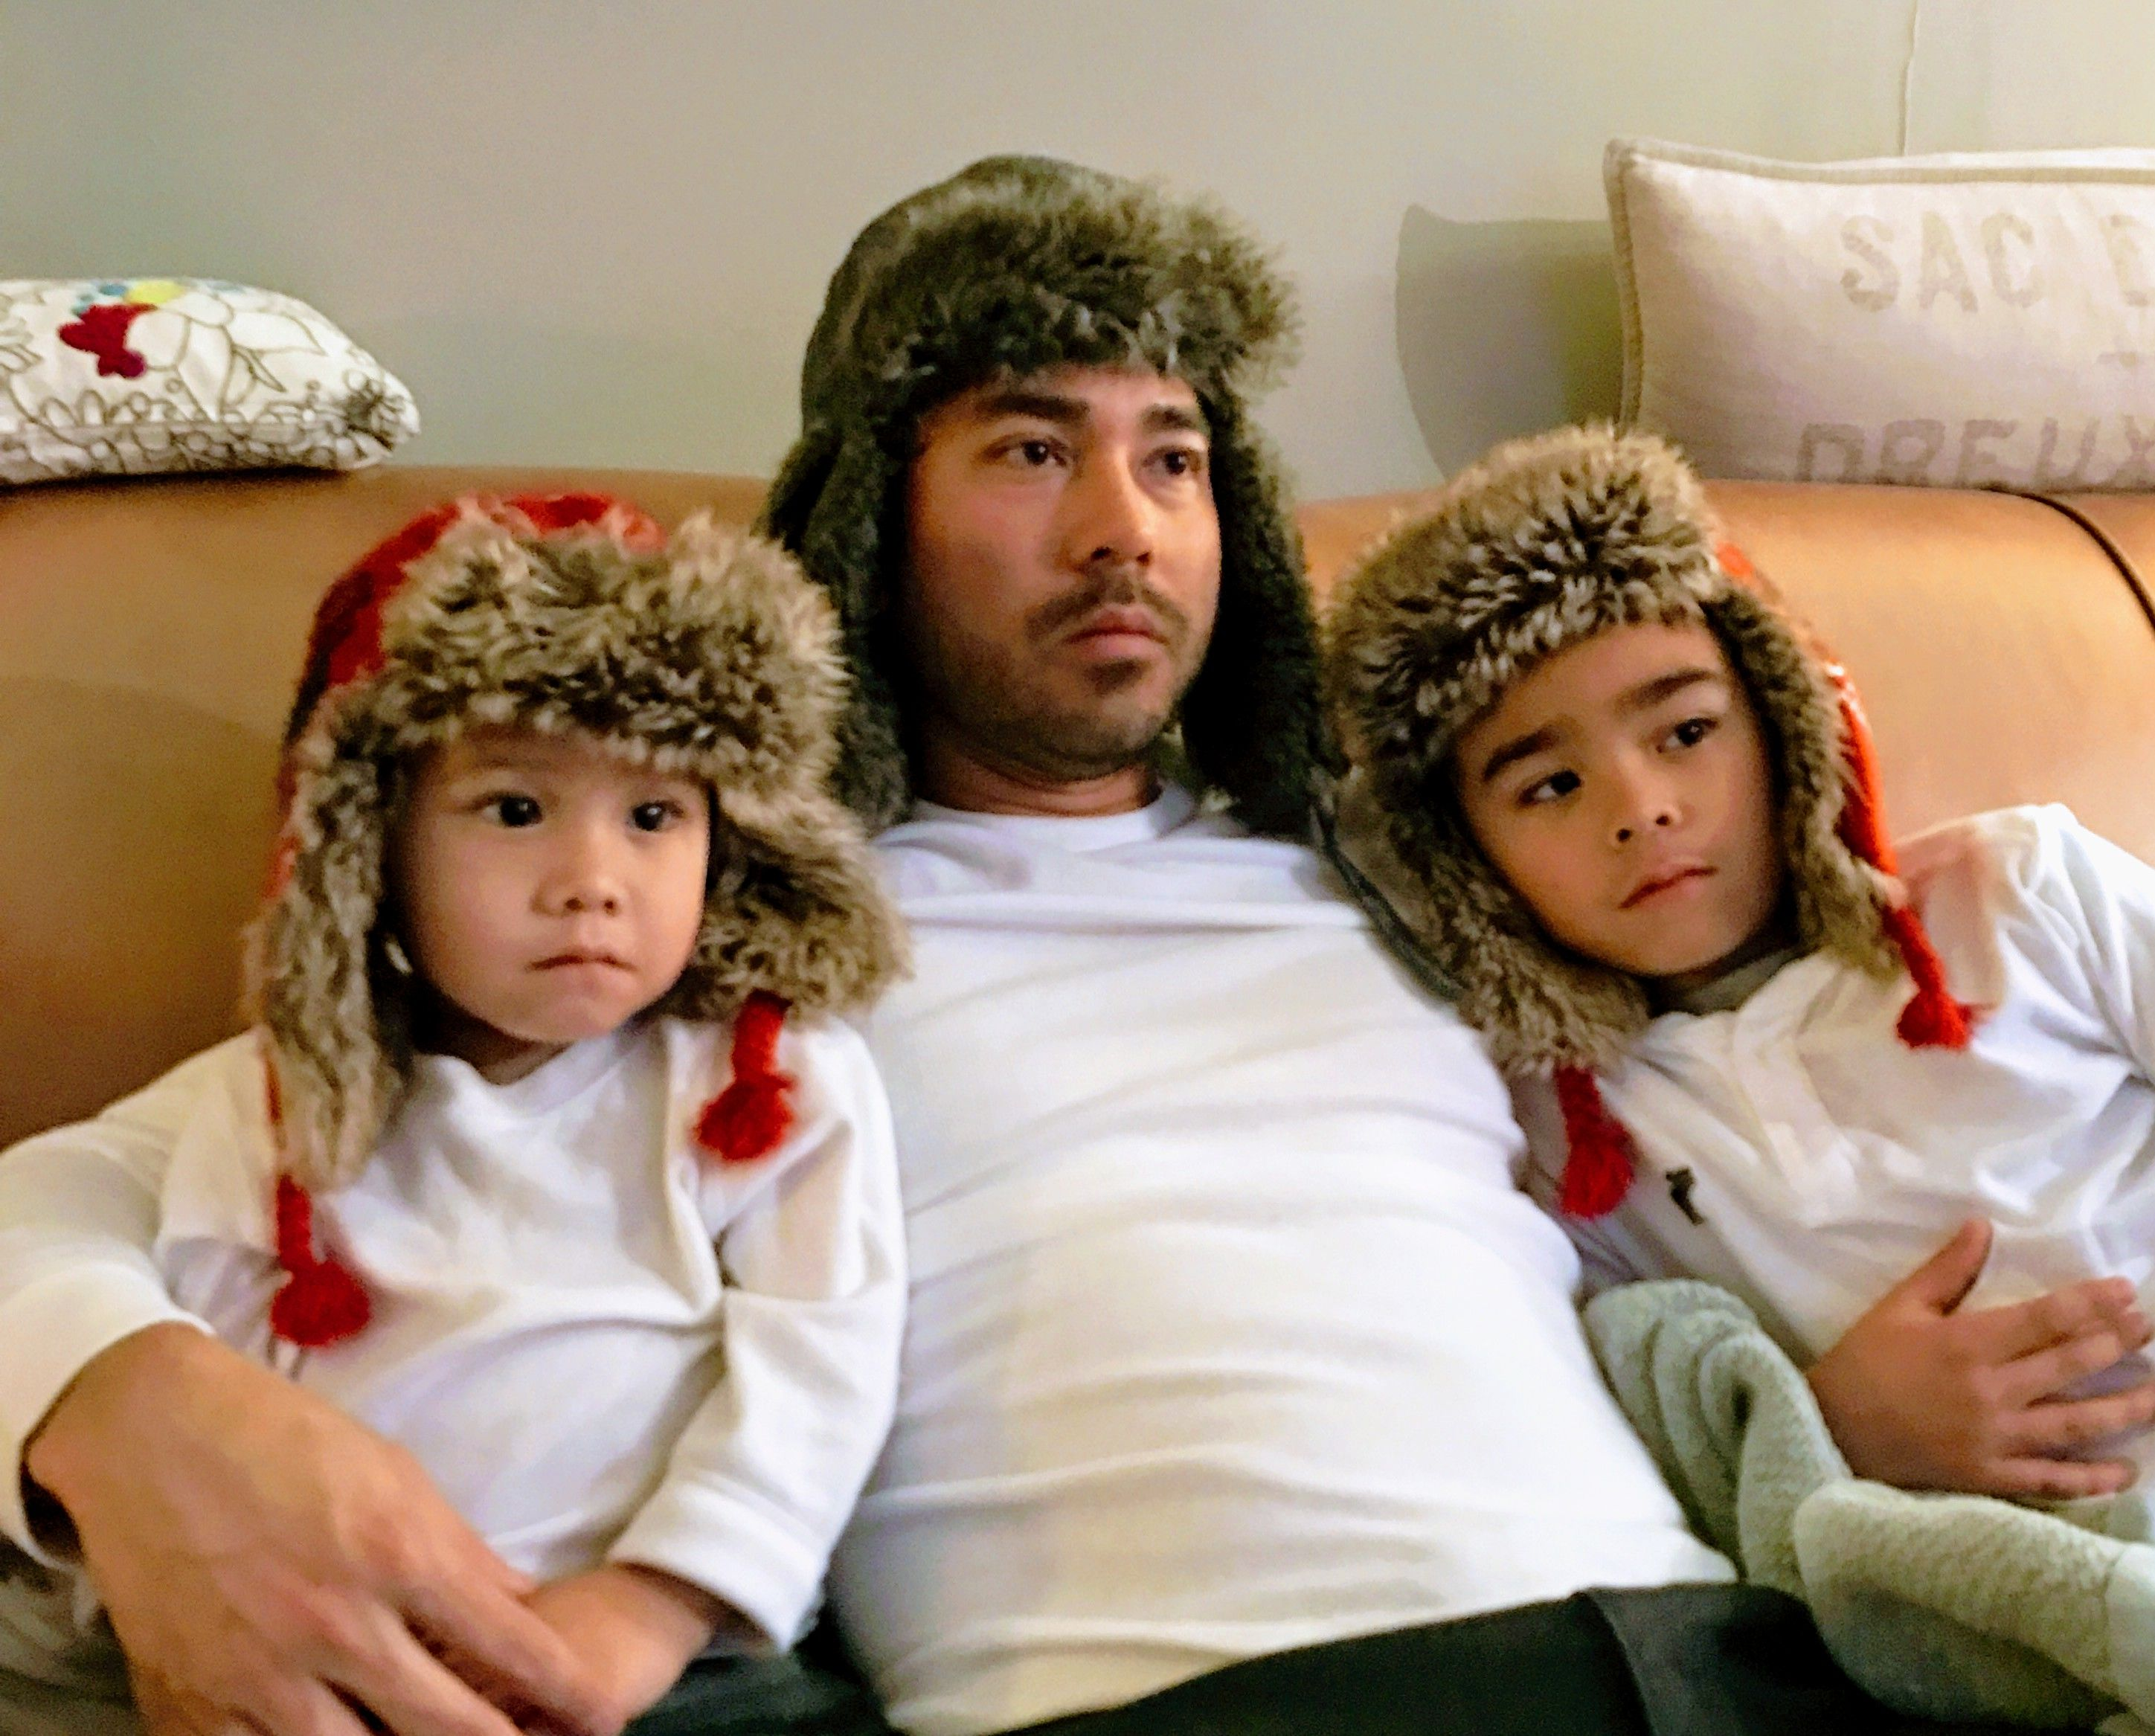 Told my son that we were going to watch happy feet. He brought our hats.... Part 2! http://ift.tt/2fYmdxG